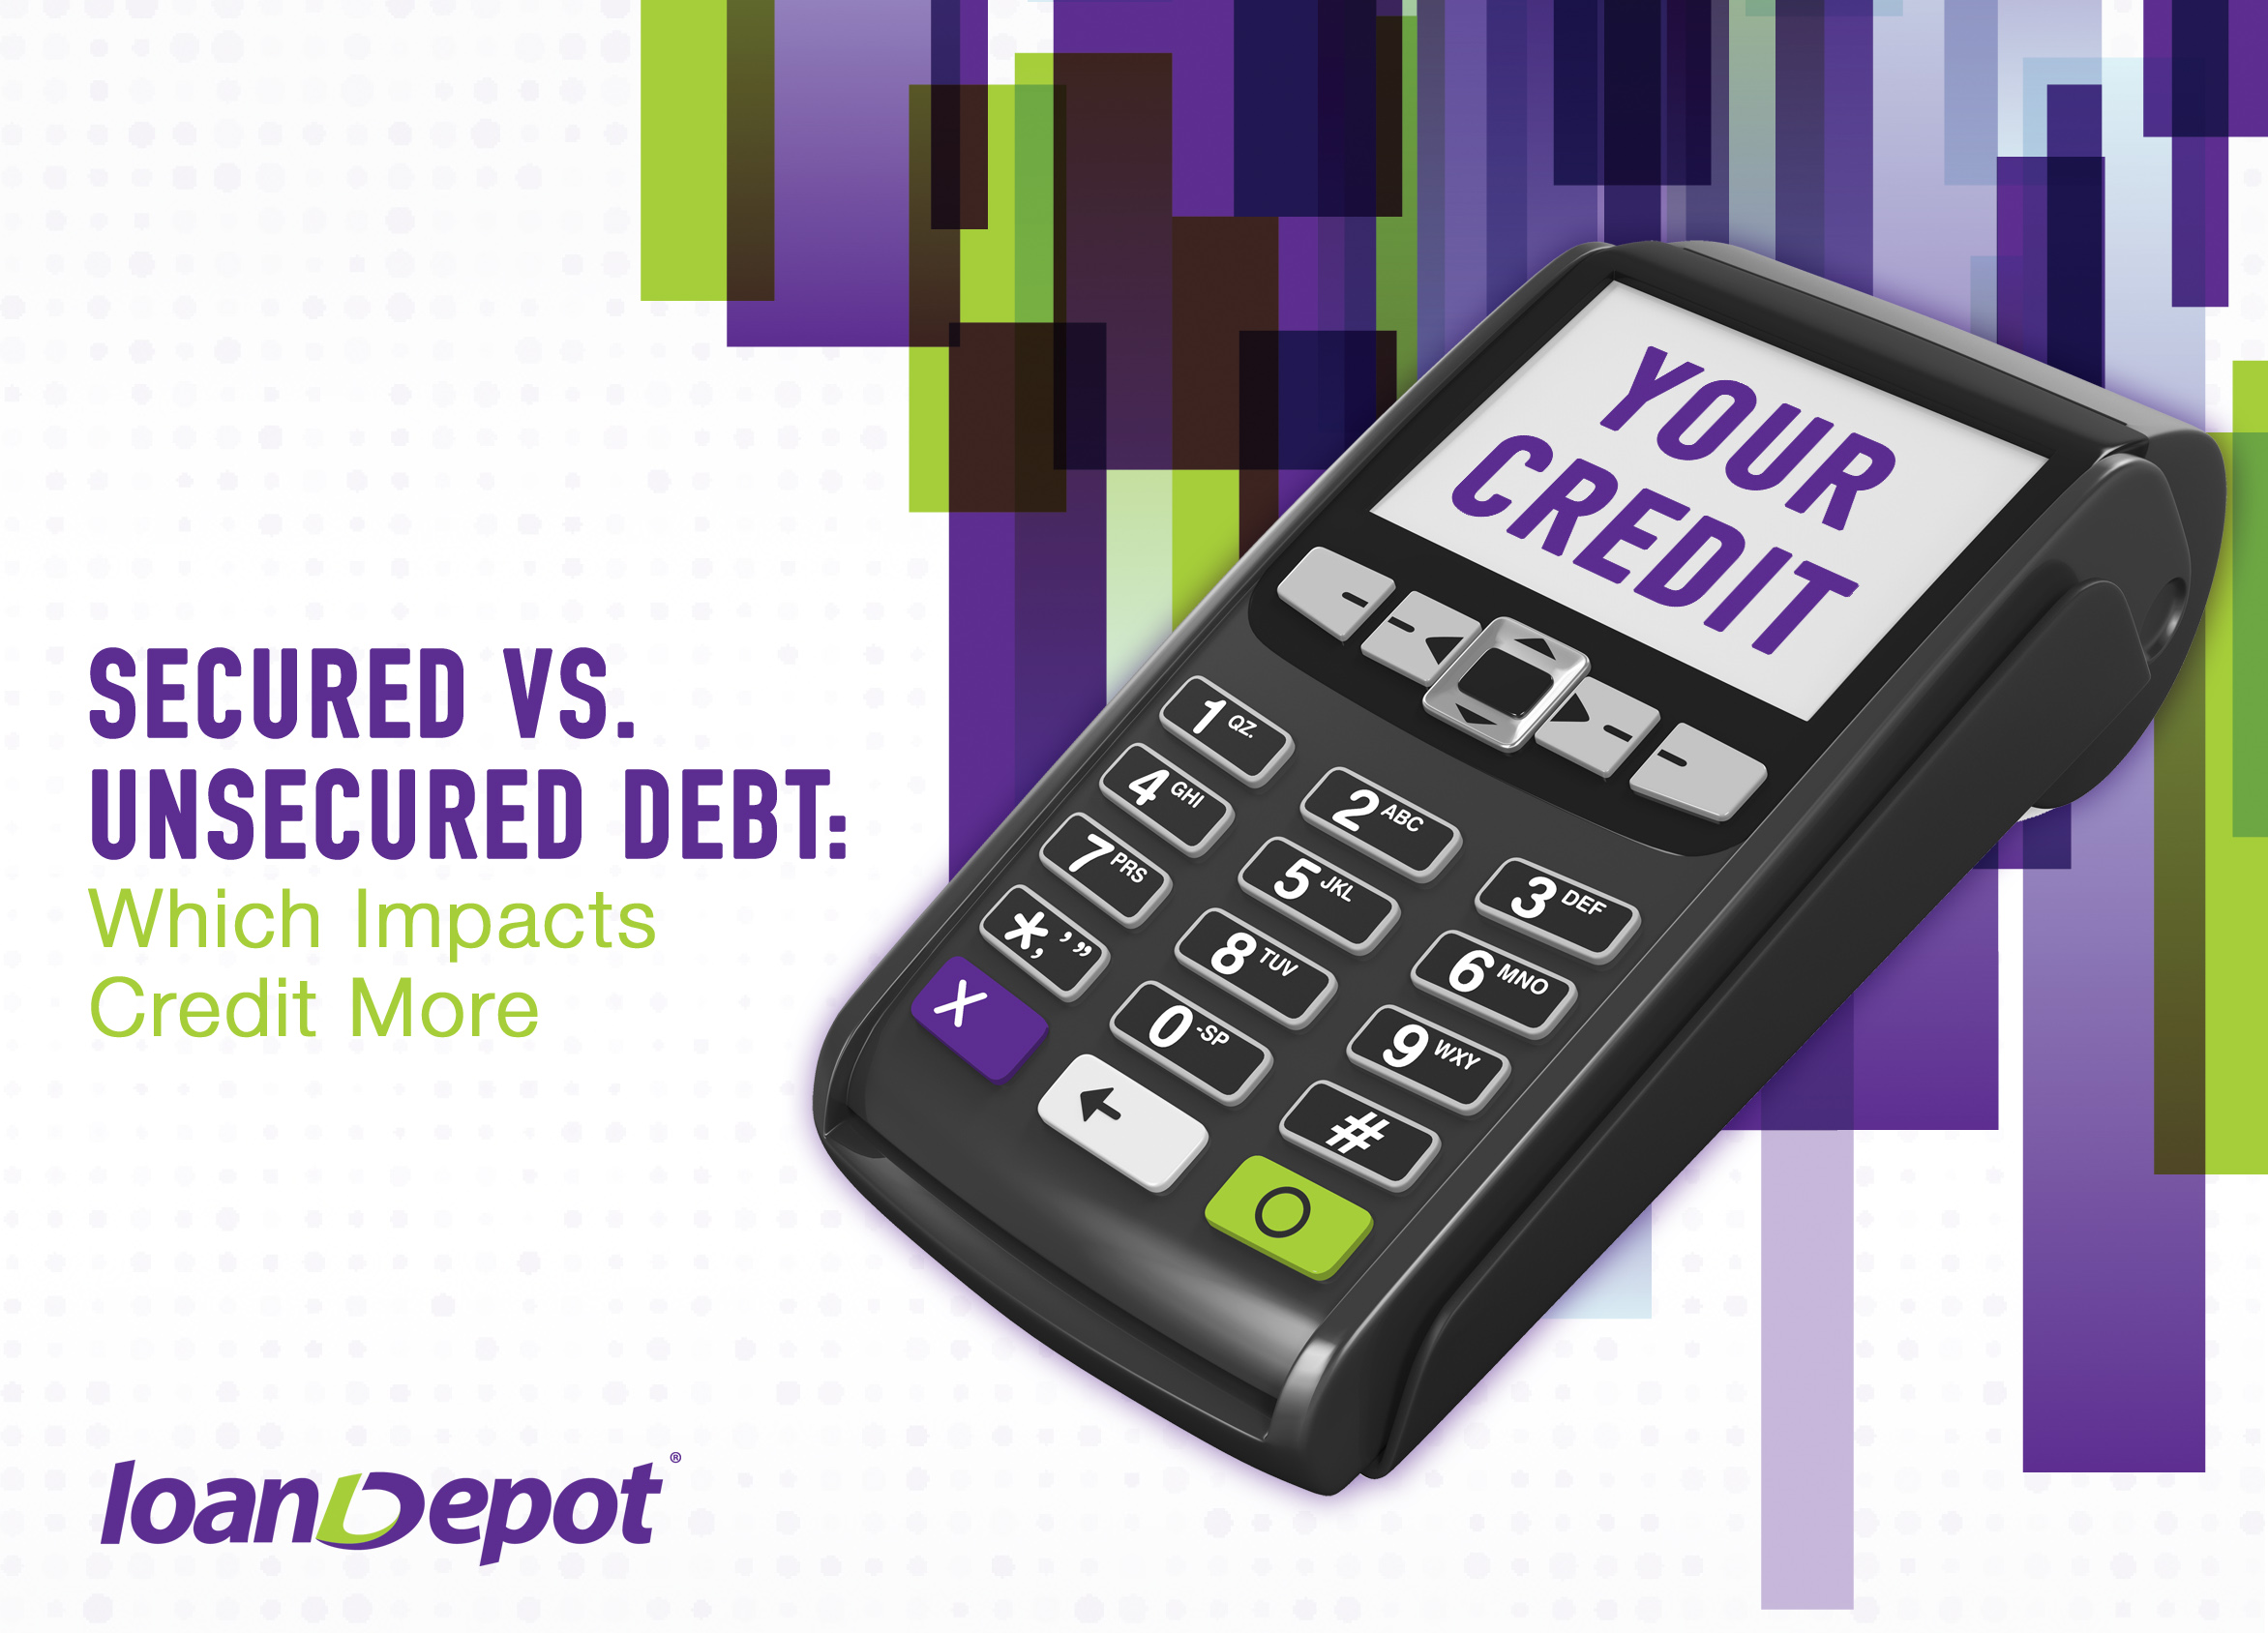 Secured vs. Unsecured Debt: Which Impacts Credit More?